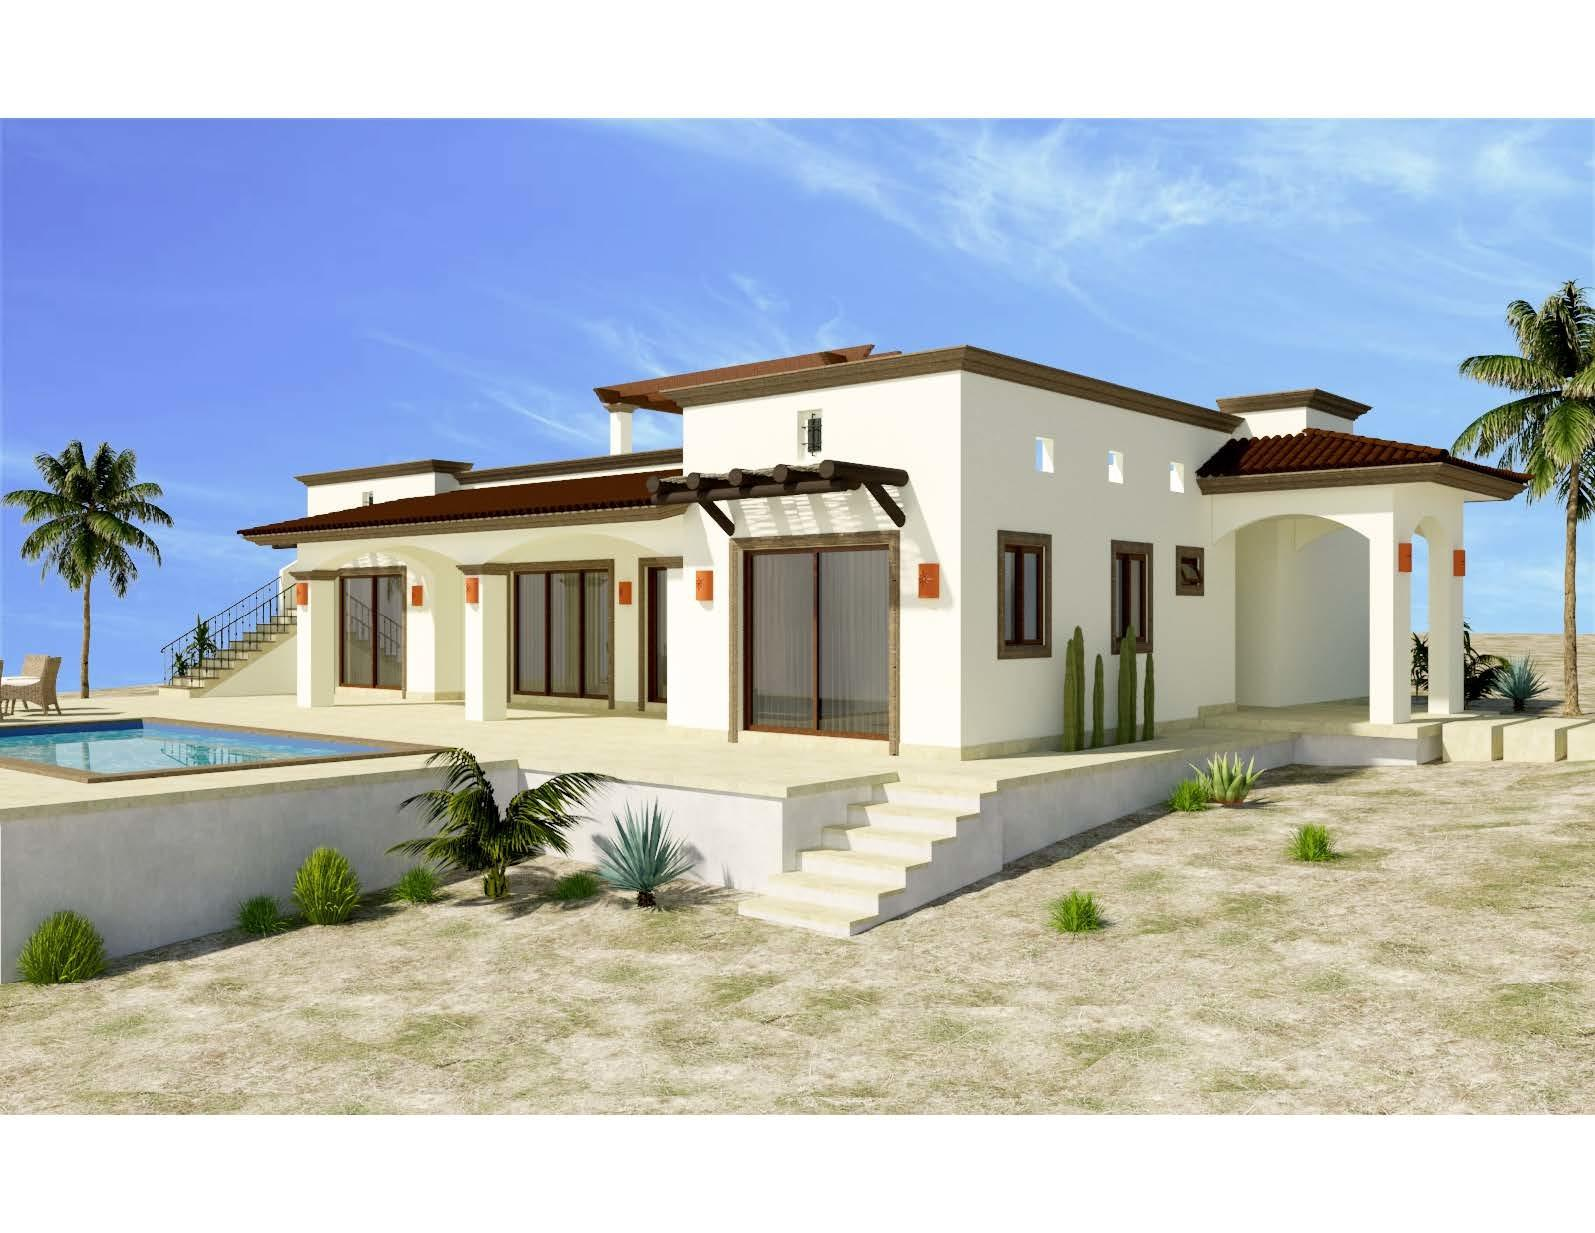 Casa Tecolote is one of 6 models to be built in the new, master-planned community of Villas del Centenario, Casa Tecolote is a 3BR/2BA home with 180m2/1,937ft2 of interior living space opening onto a large 54m2/580ft2 covered patio with tiled roof. The stone front entry welcomes visitors into an open living/kitchen/dining area featuring 10' ceilings, a large built-in pantry, and dual sliding glass doors that open onto the terrace. Custom-built hardwood cabinetry, oversized tile, granite countertops and stainless appliances are included. The master suite has dual vanities in the bath, marble tiled shower and walk-in closets. The house also includes 2 guest BRs, a guest bath, laundry, and A/C units and ceiling fans in every room. Optional upgrades include a pool, spa, garage or garage/casita The listing price includes the base home price plus a lot premium of $39,900. Lot premiums range from $39,900 - $79,900, so the final price of the home will vary based on the low selected. Also, some lots may require additional cost for retaining walls. The base price of the home includes all interior and exterior covered areas but extra terrace area is an upgrade. price does not include other options or upgrades.  Villas del Centenario is a private, gated community of homes located in the hills of El Centenario overlooking the Sea of Cortez with stunning ocean views. Now taking lot reservations with 50% deposit towards the lot premium.  The first homes to be built are expected to break ground in Fall 2021 (Phase I and II only), with completion averaging 9 months later. Please consult the listing agency for the full lot price list.